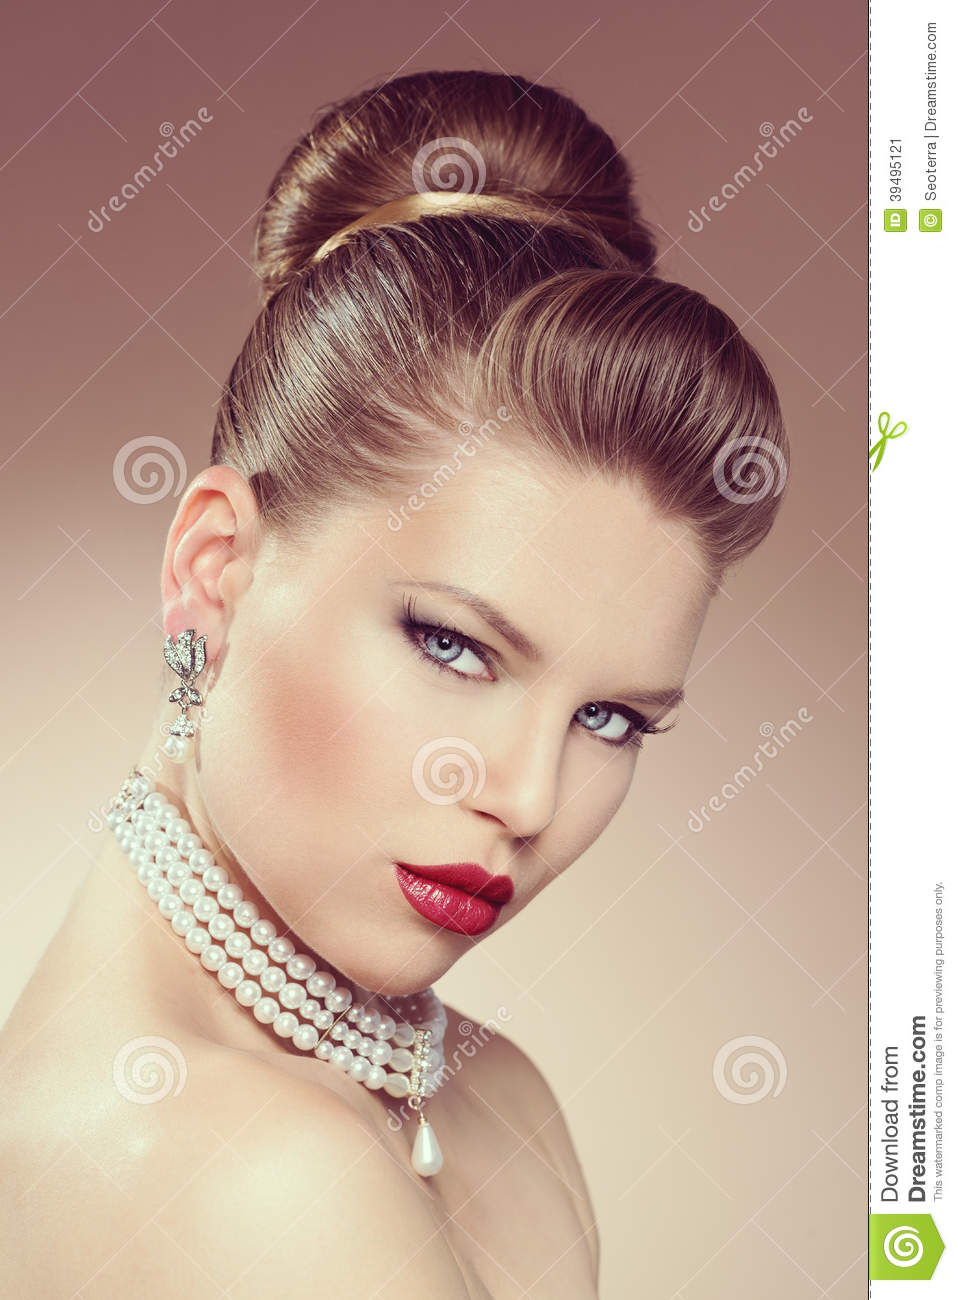 Fashion Girl Wearing Jewelery Stock Photo Image 39495121